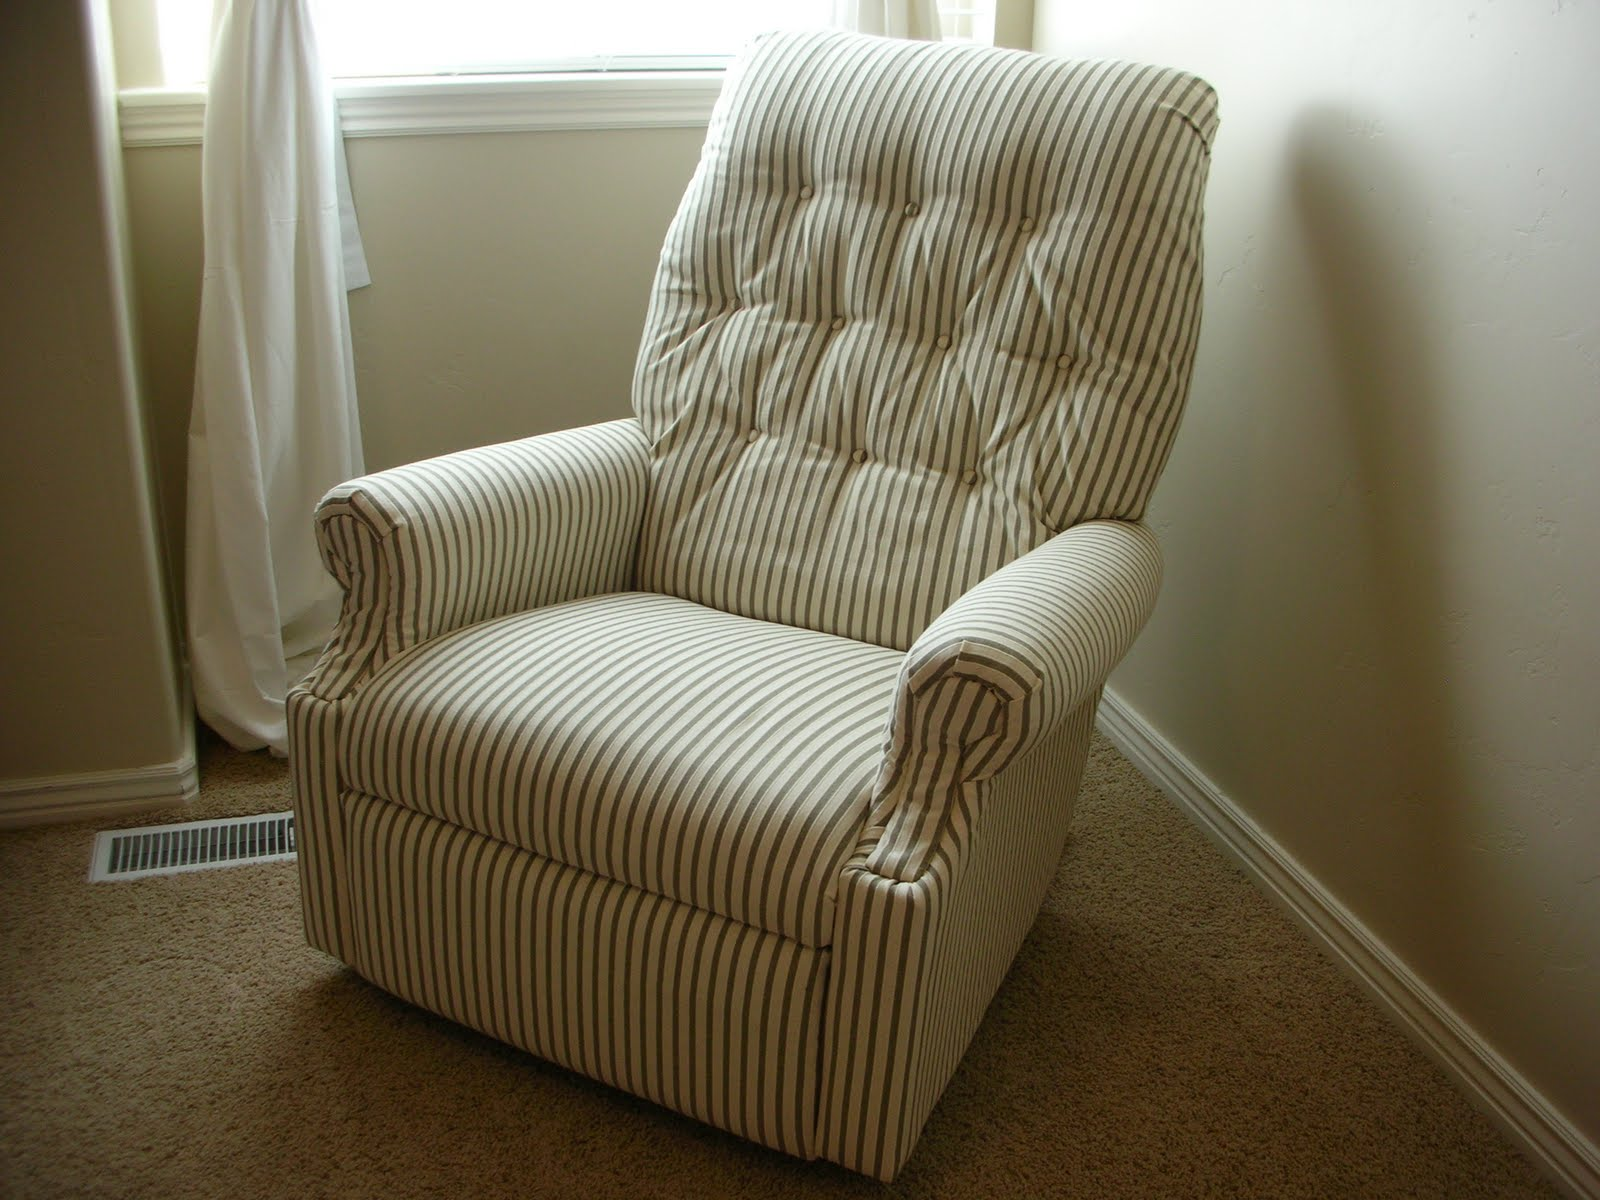 DIY Reupholster An Old La-Z-Boy Recliner : reclining easy chairs - islam-shia.org